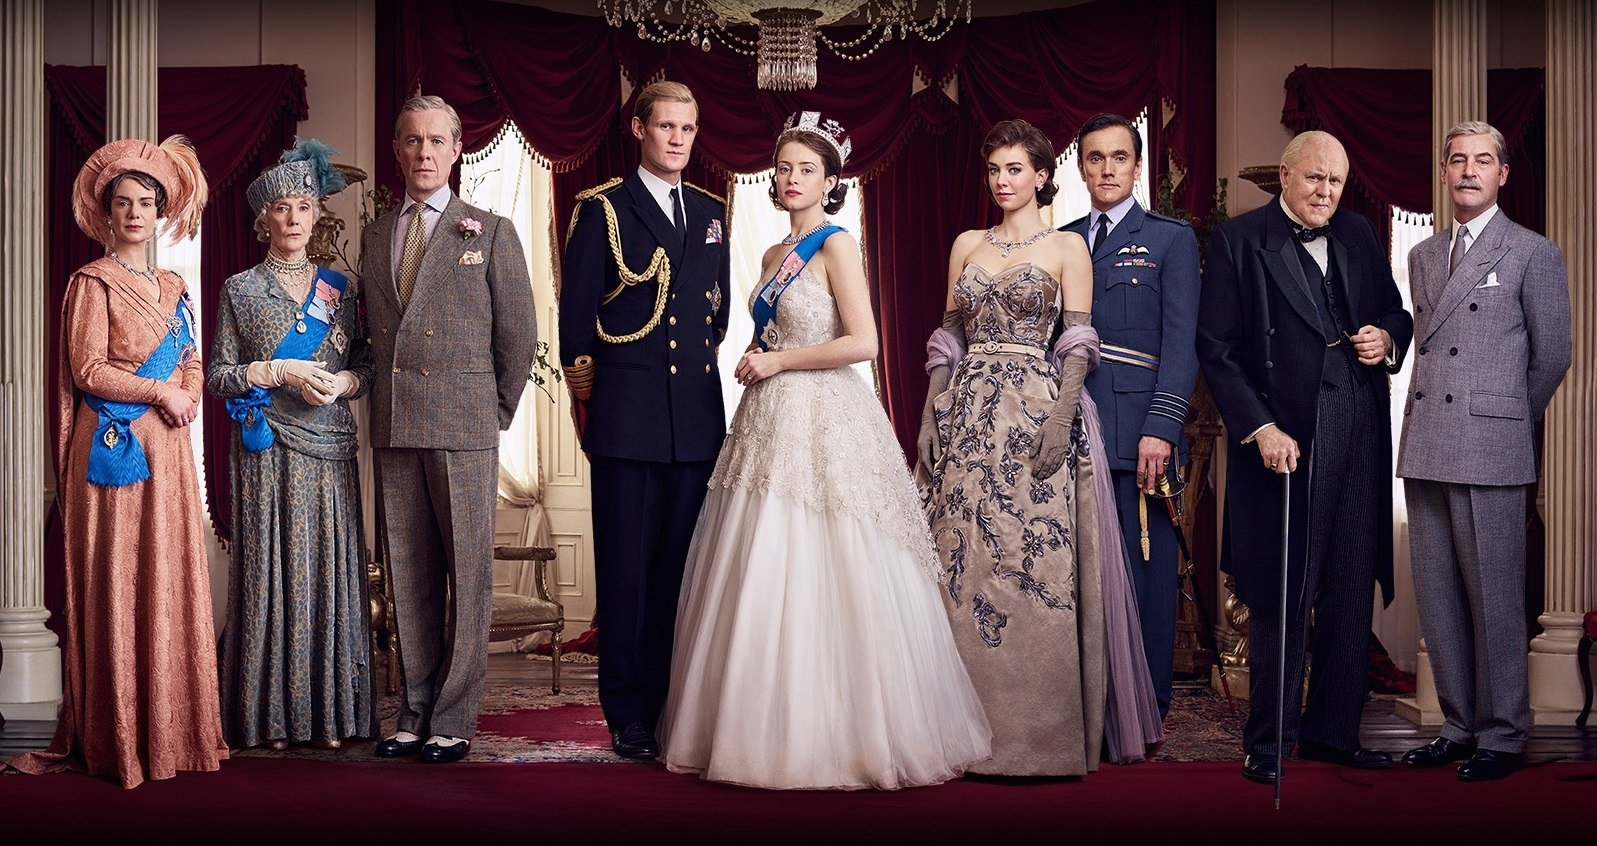 The Crown Season 4 Plot and Queens